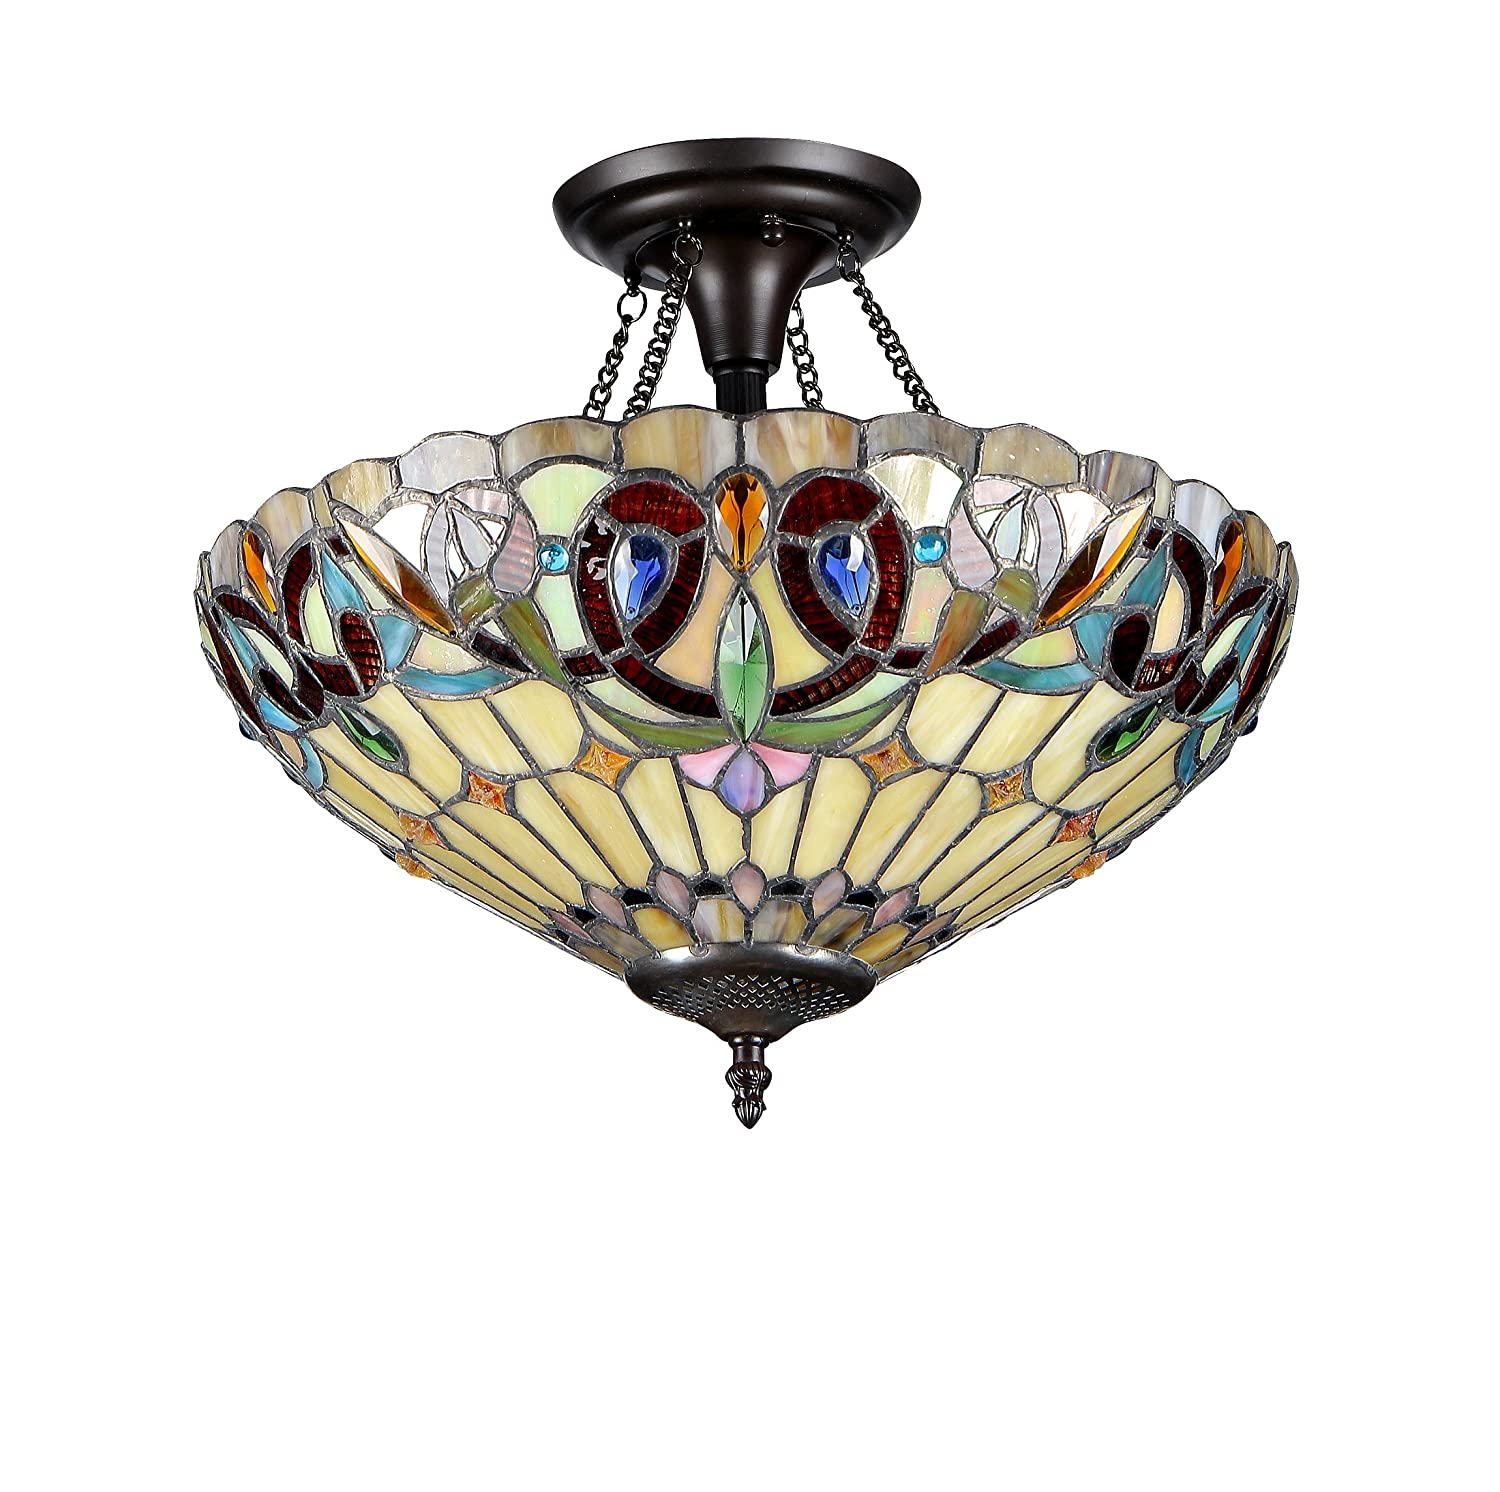 Chloe lighting chloe lighting serenity 2 light tiffany style chloe lighting chloe lighting serenity 2 light tiffany style victorian semi flush ceiling fixture with 16 in shade close to ceiling light fixtures aloadofball Choice Image